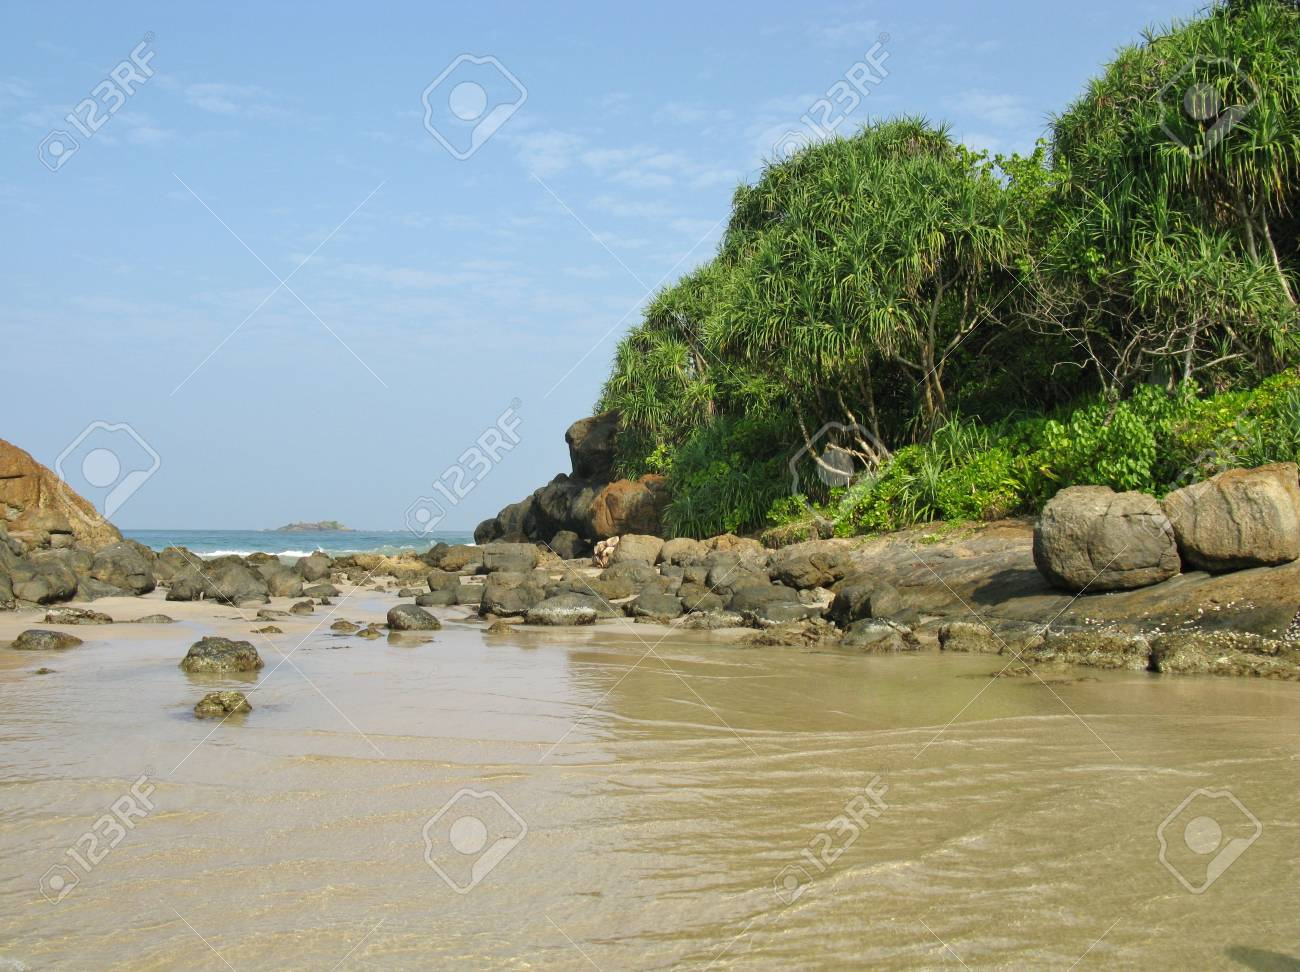 The beach with the rocks and vegetation and the Indian ocean in Sri Lanka Stock Photo - 18288683